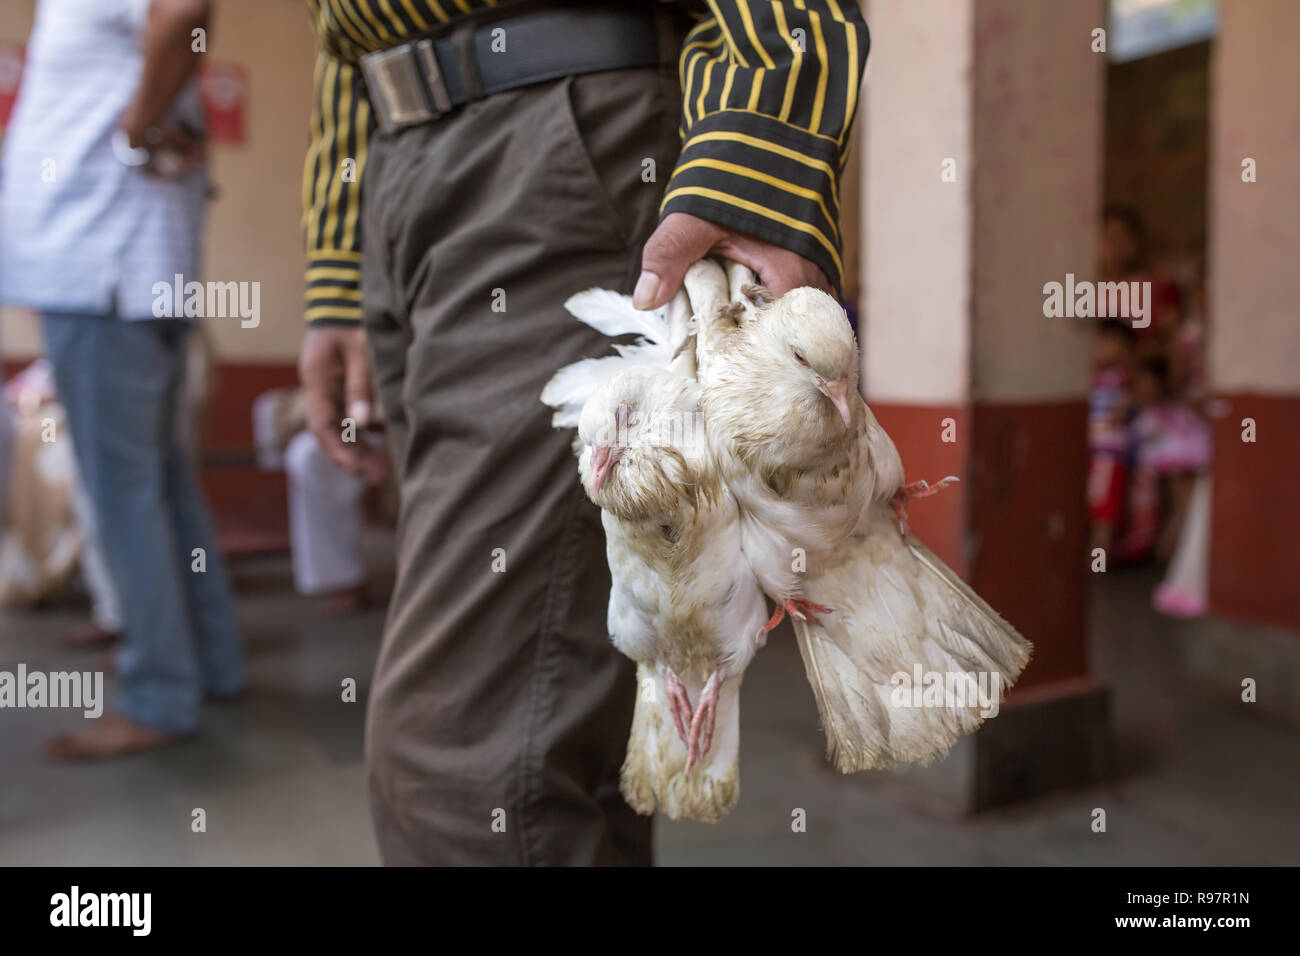 Indian man holding pigeons before sacrificing them in Hindu Kamakhya temple in Guwahati, Assam state, North East India. - Stock Image